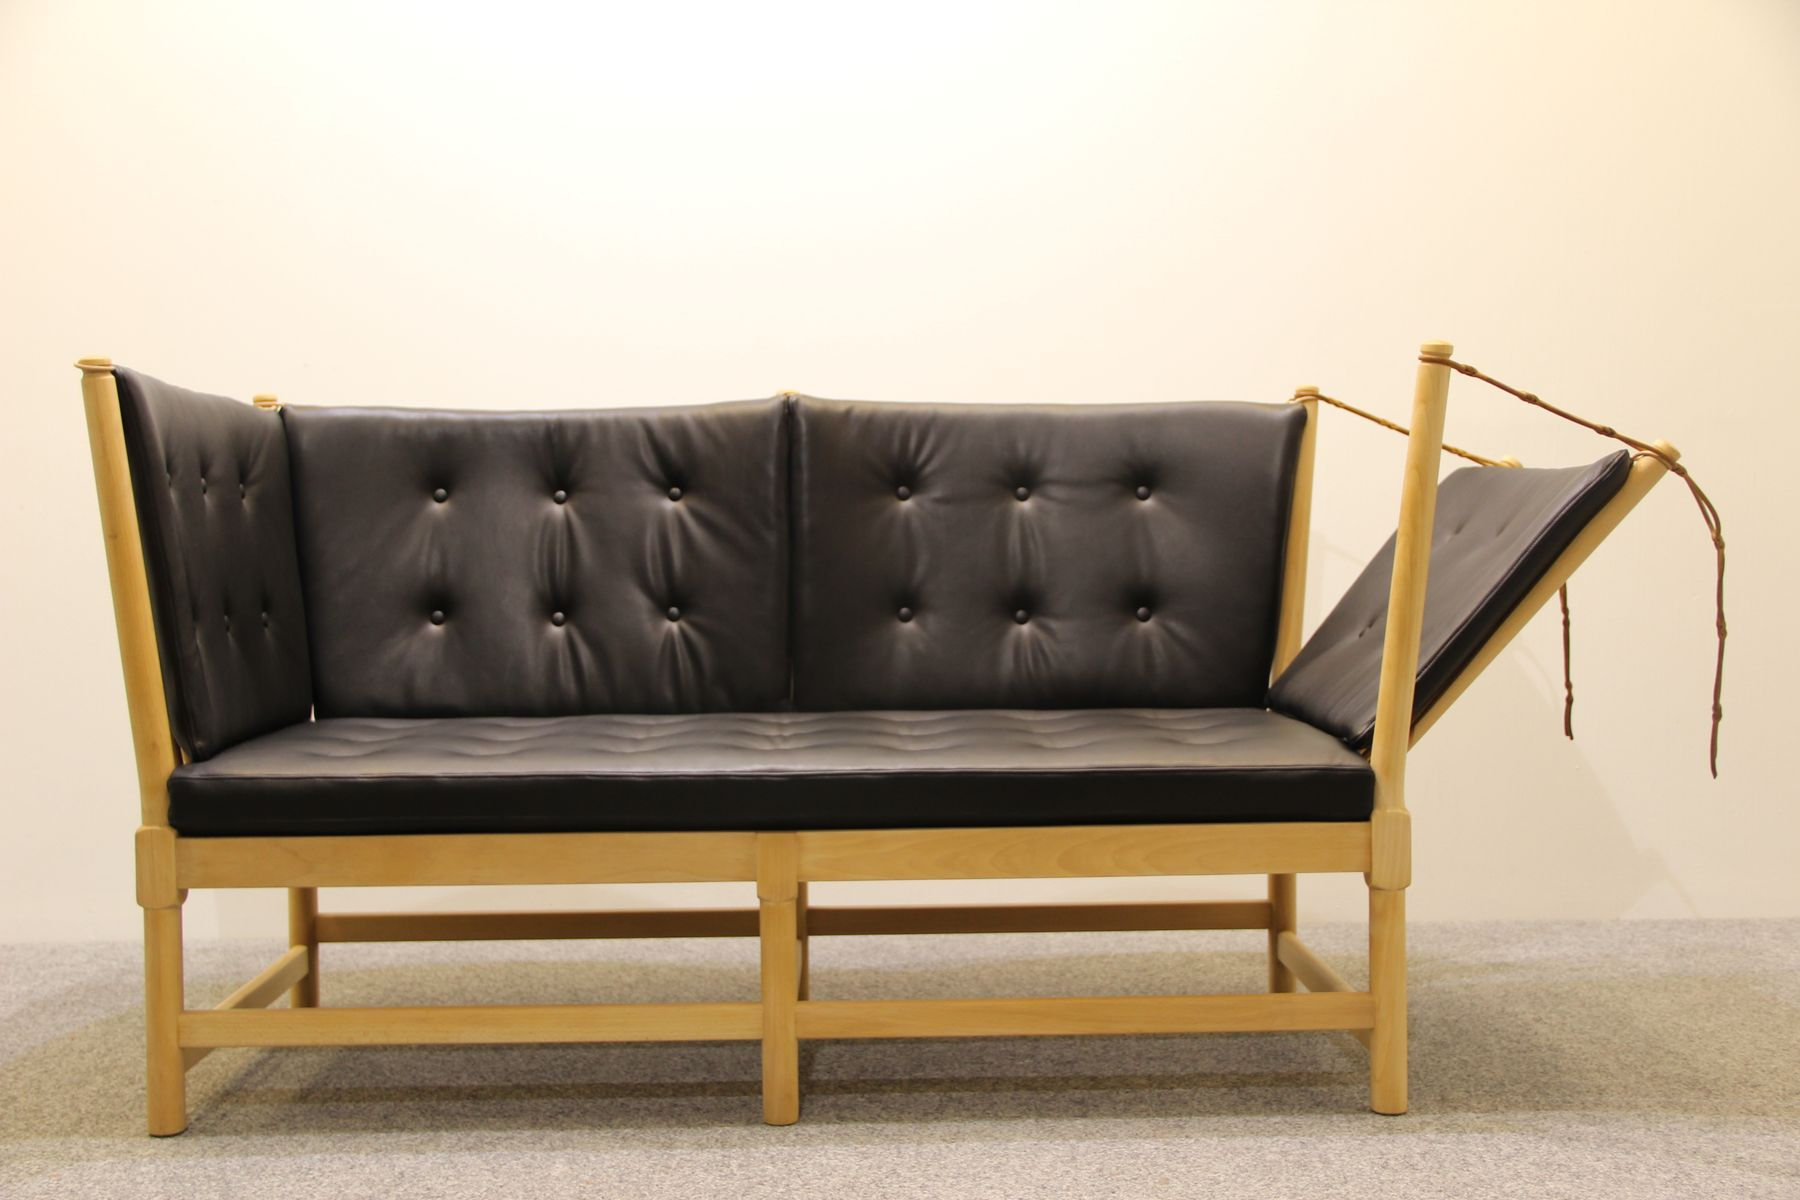 Vintage 1789 Sofa In Beech And Aniline Leather By Borge Mogensen For Fritz Hansen